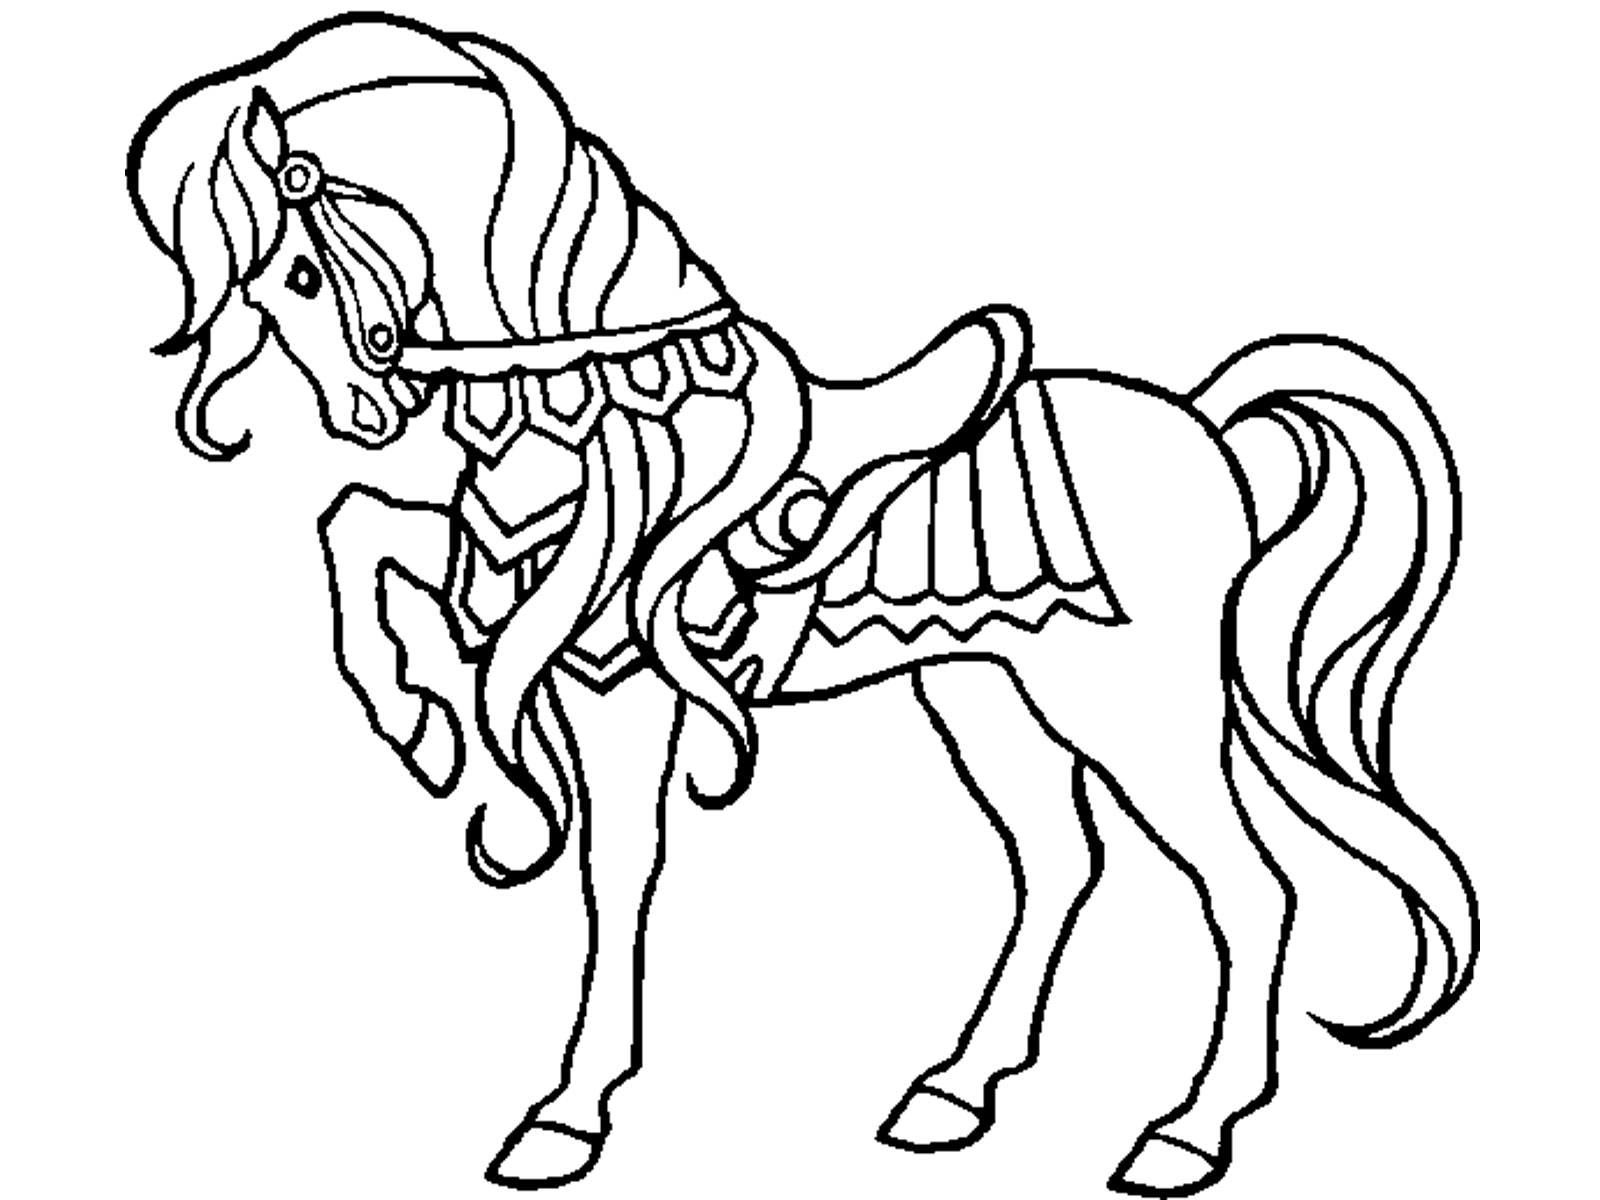 horses to print and color horse with patterns free to color for children horses and horses print to color